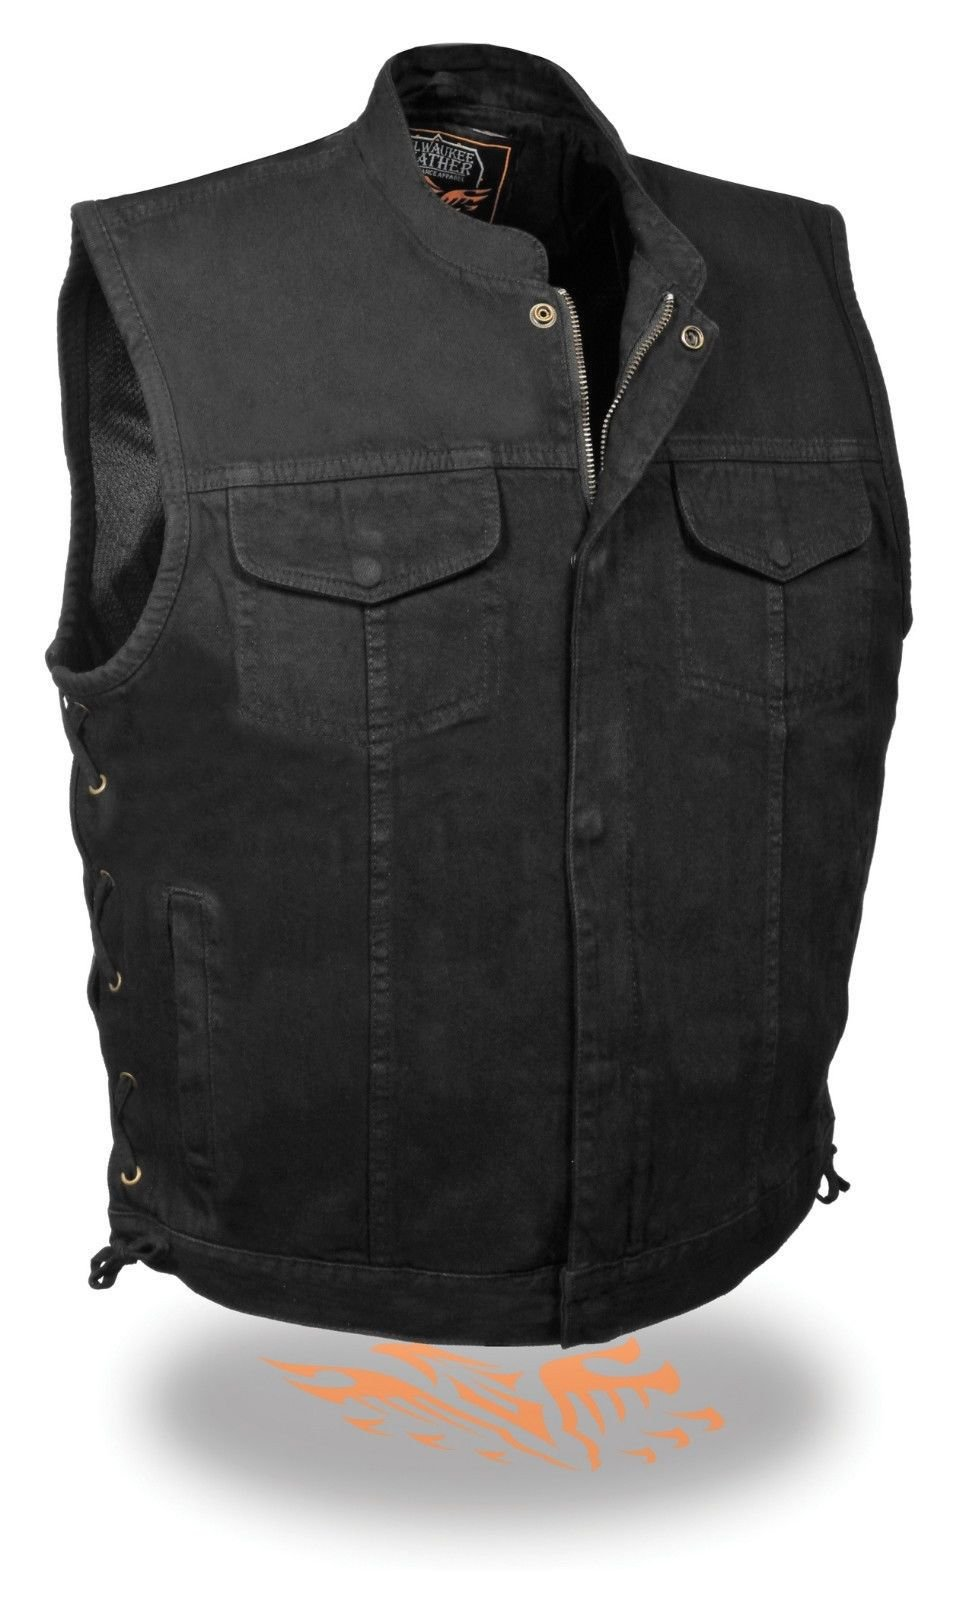 MEN'S MOTORCYCLE SON OF ANARCHY BLACK DENIM VEST SIDE LACES W ZIPPER GUN POCKETS (XL Regular)